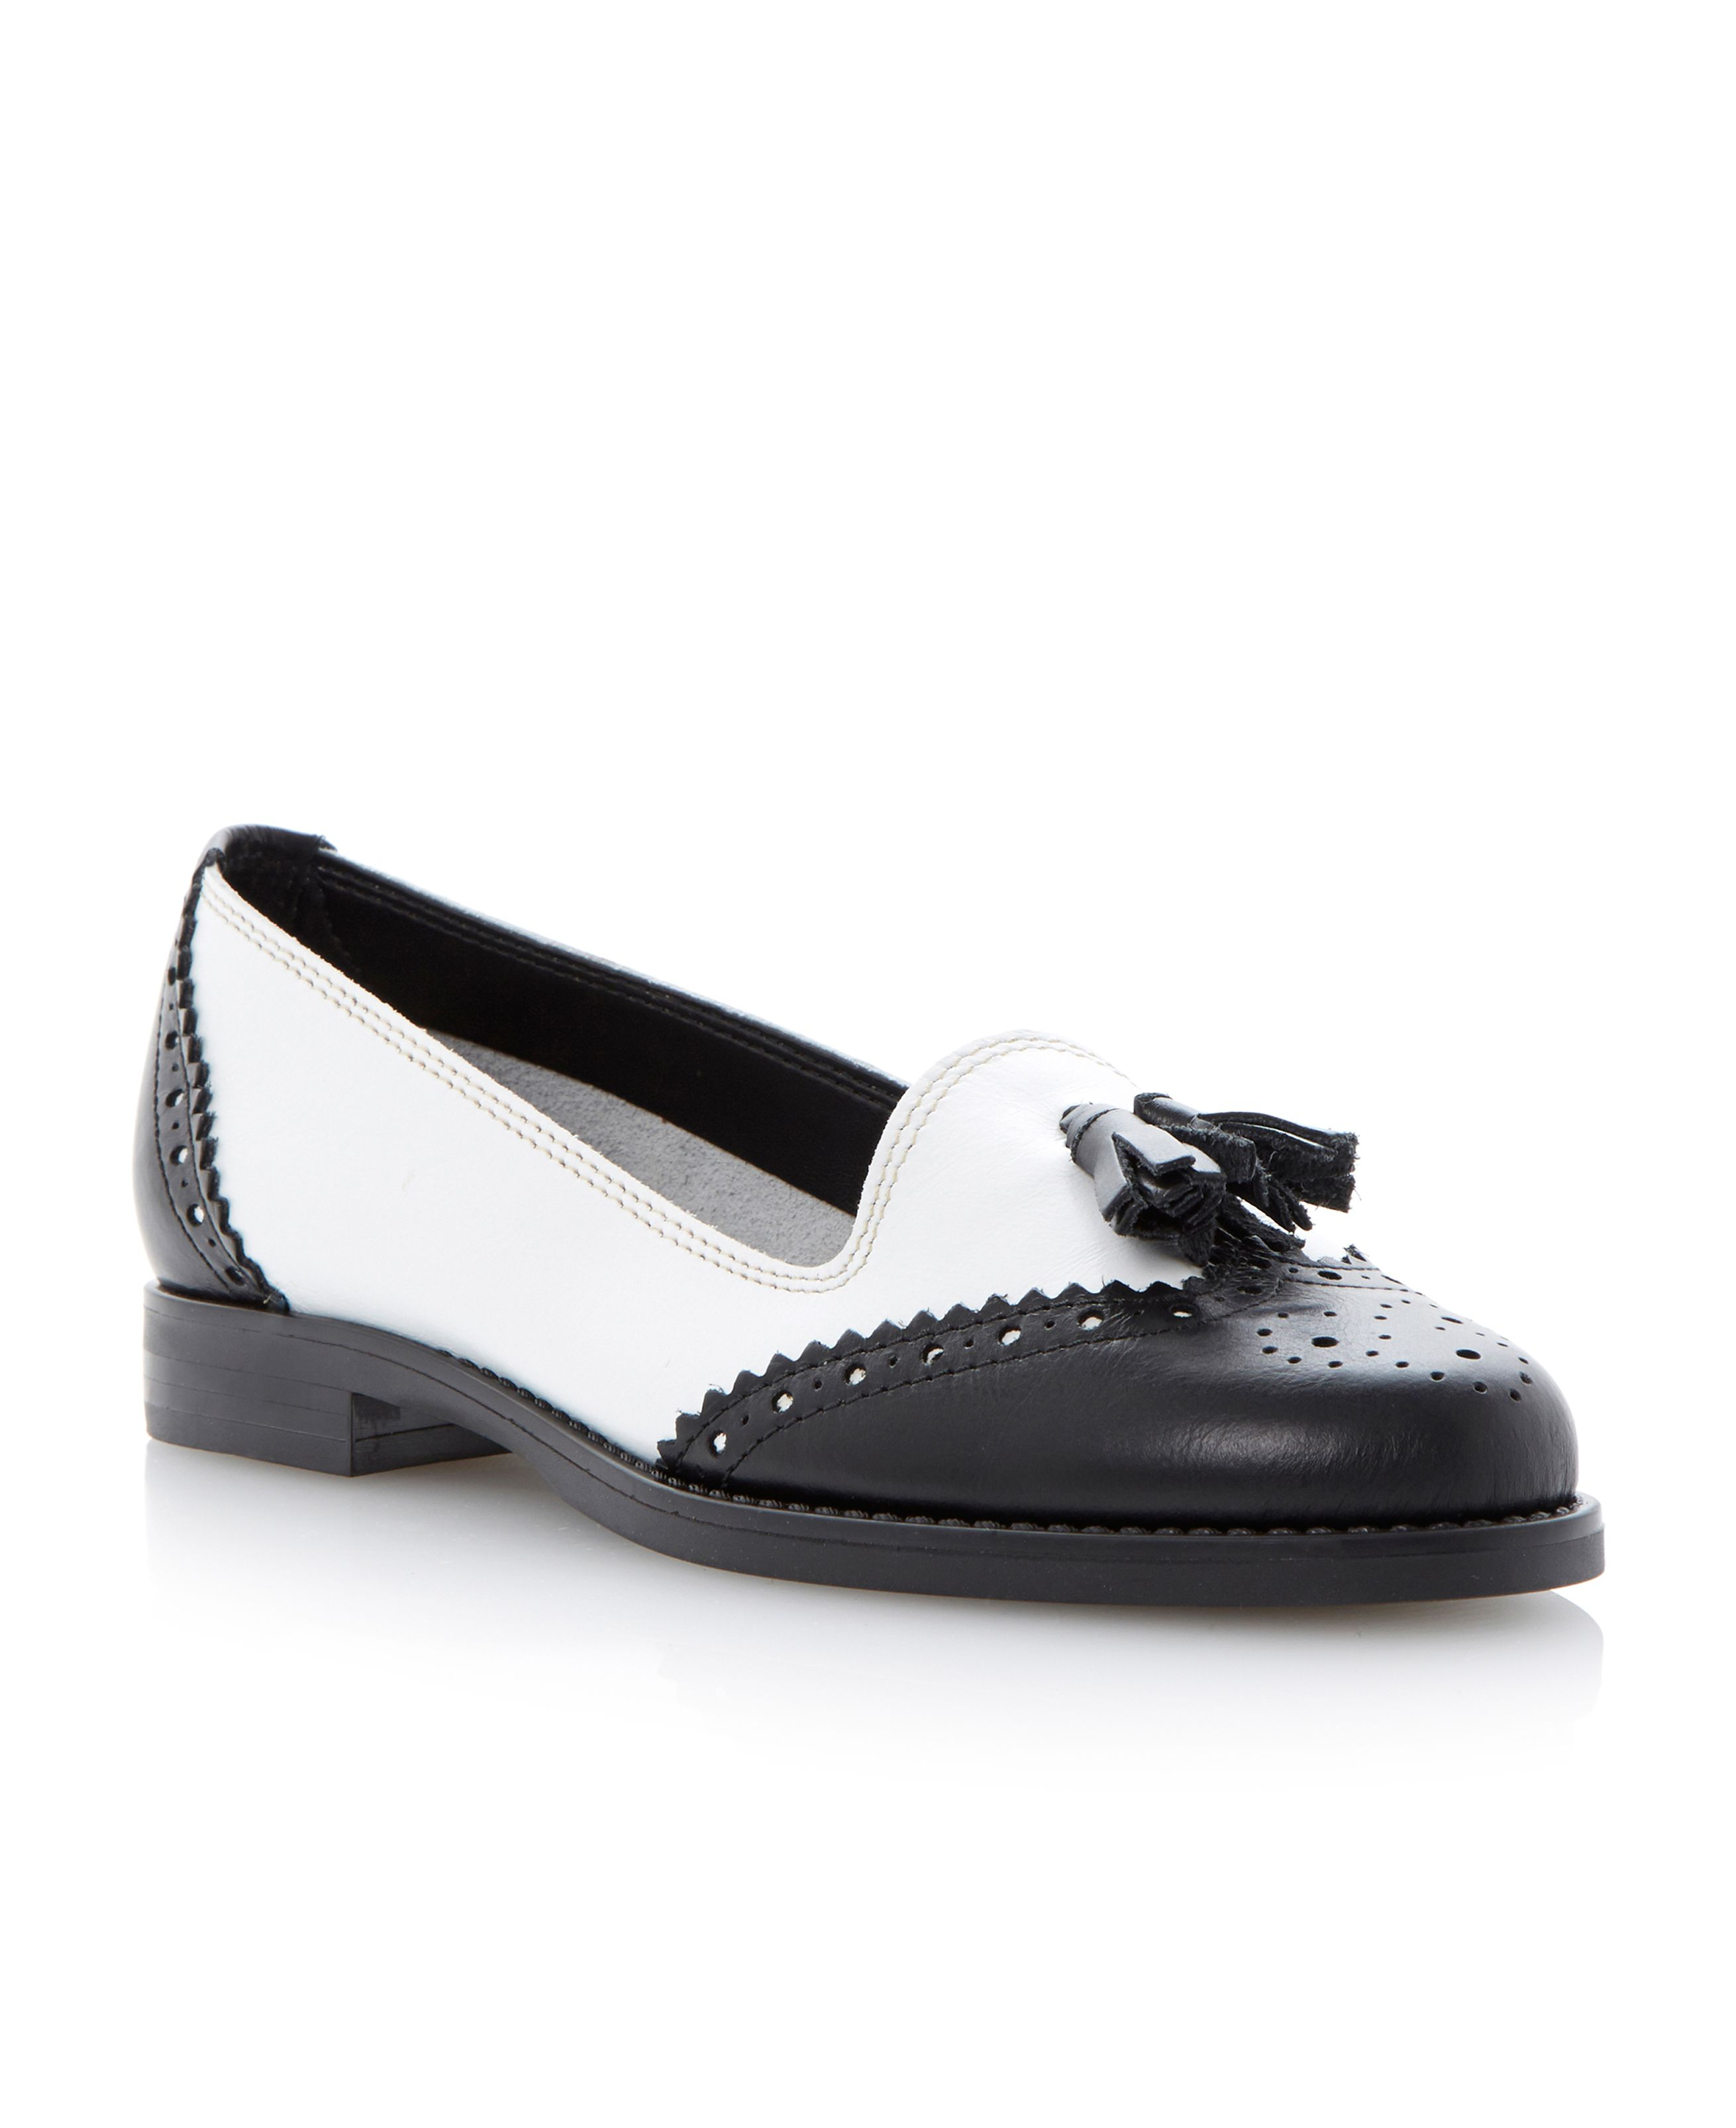 Lazarus tassel loafer shoes